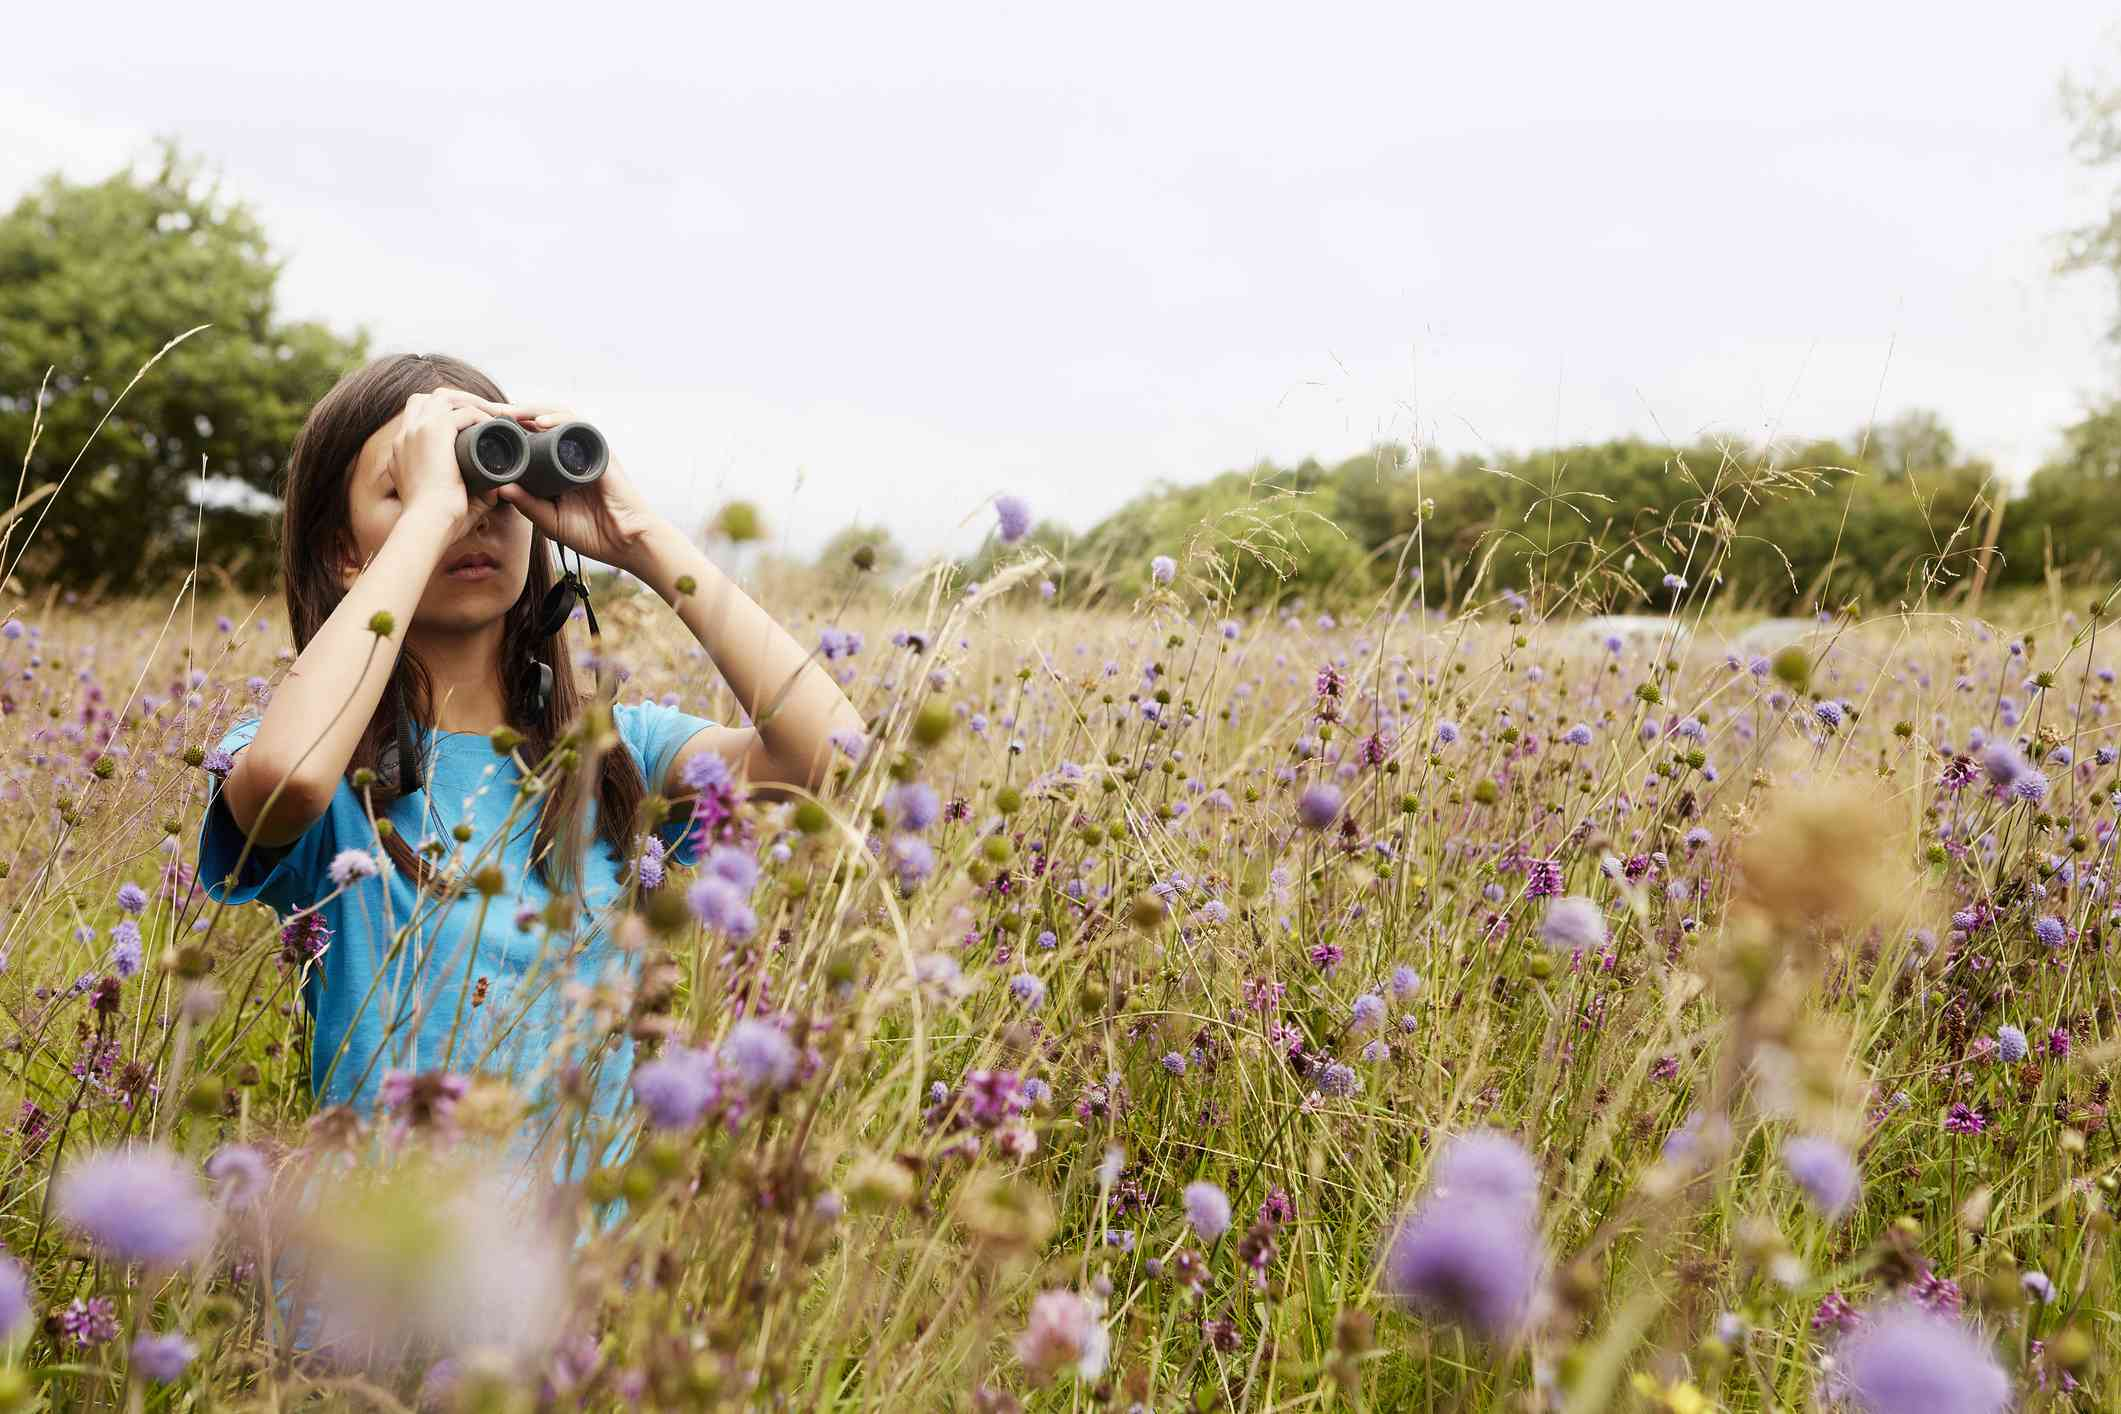 A woman viewing wildlife from a safe distance